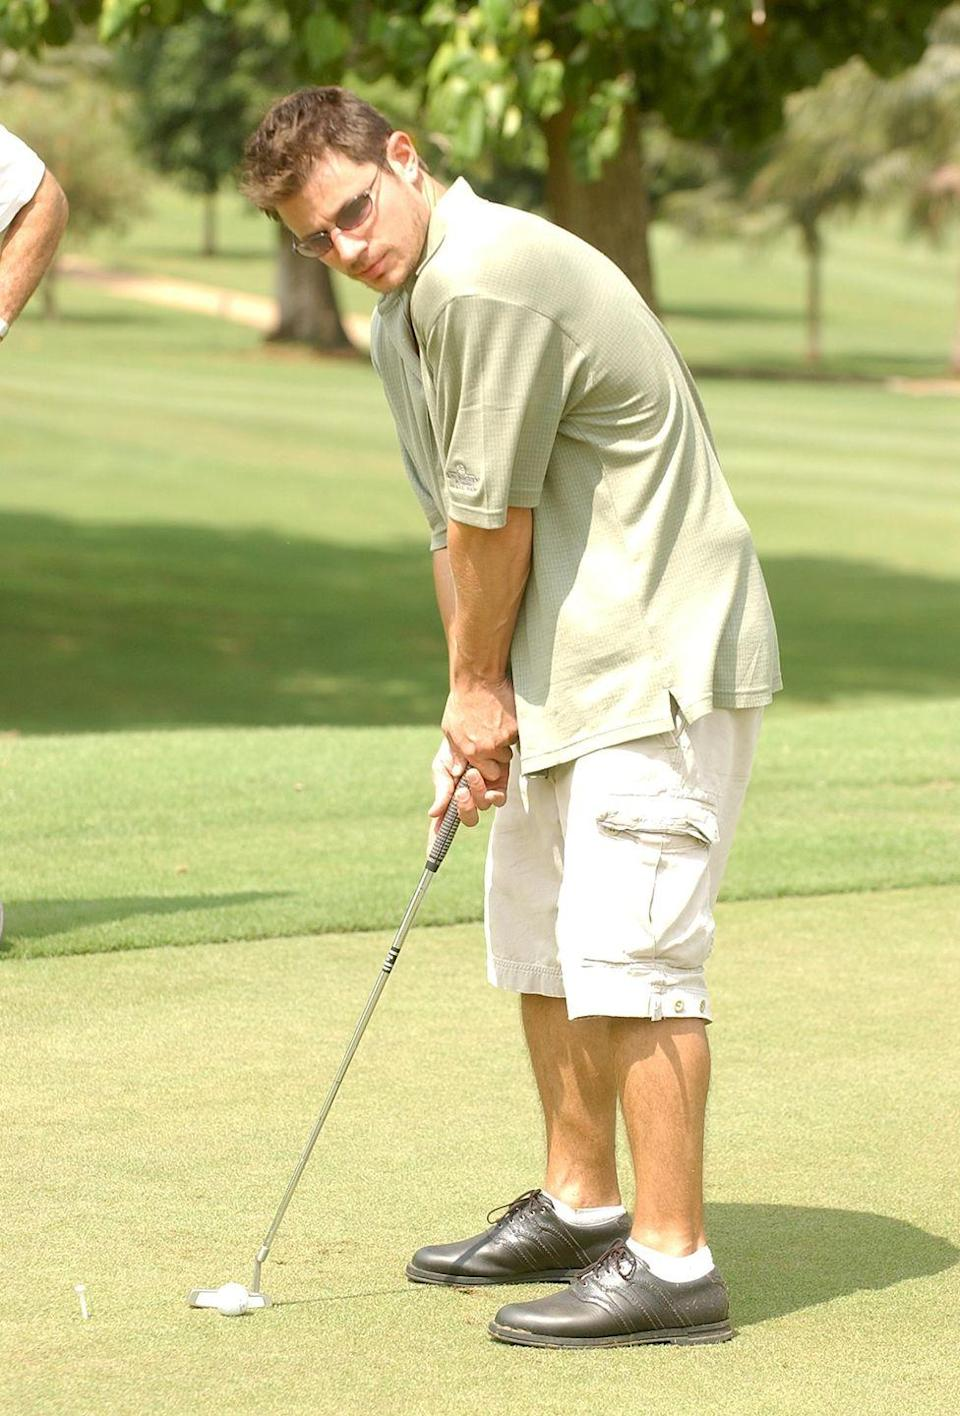 <p>Nick Lachey golfing while on vacation in Ocho Rios, Jamaica.</p><p>Other celebrity visitors this year: Gabrielle Union, Jessica Simpson, Melanie Griffith, Lance Bass.<br></p>